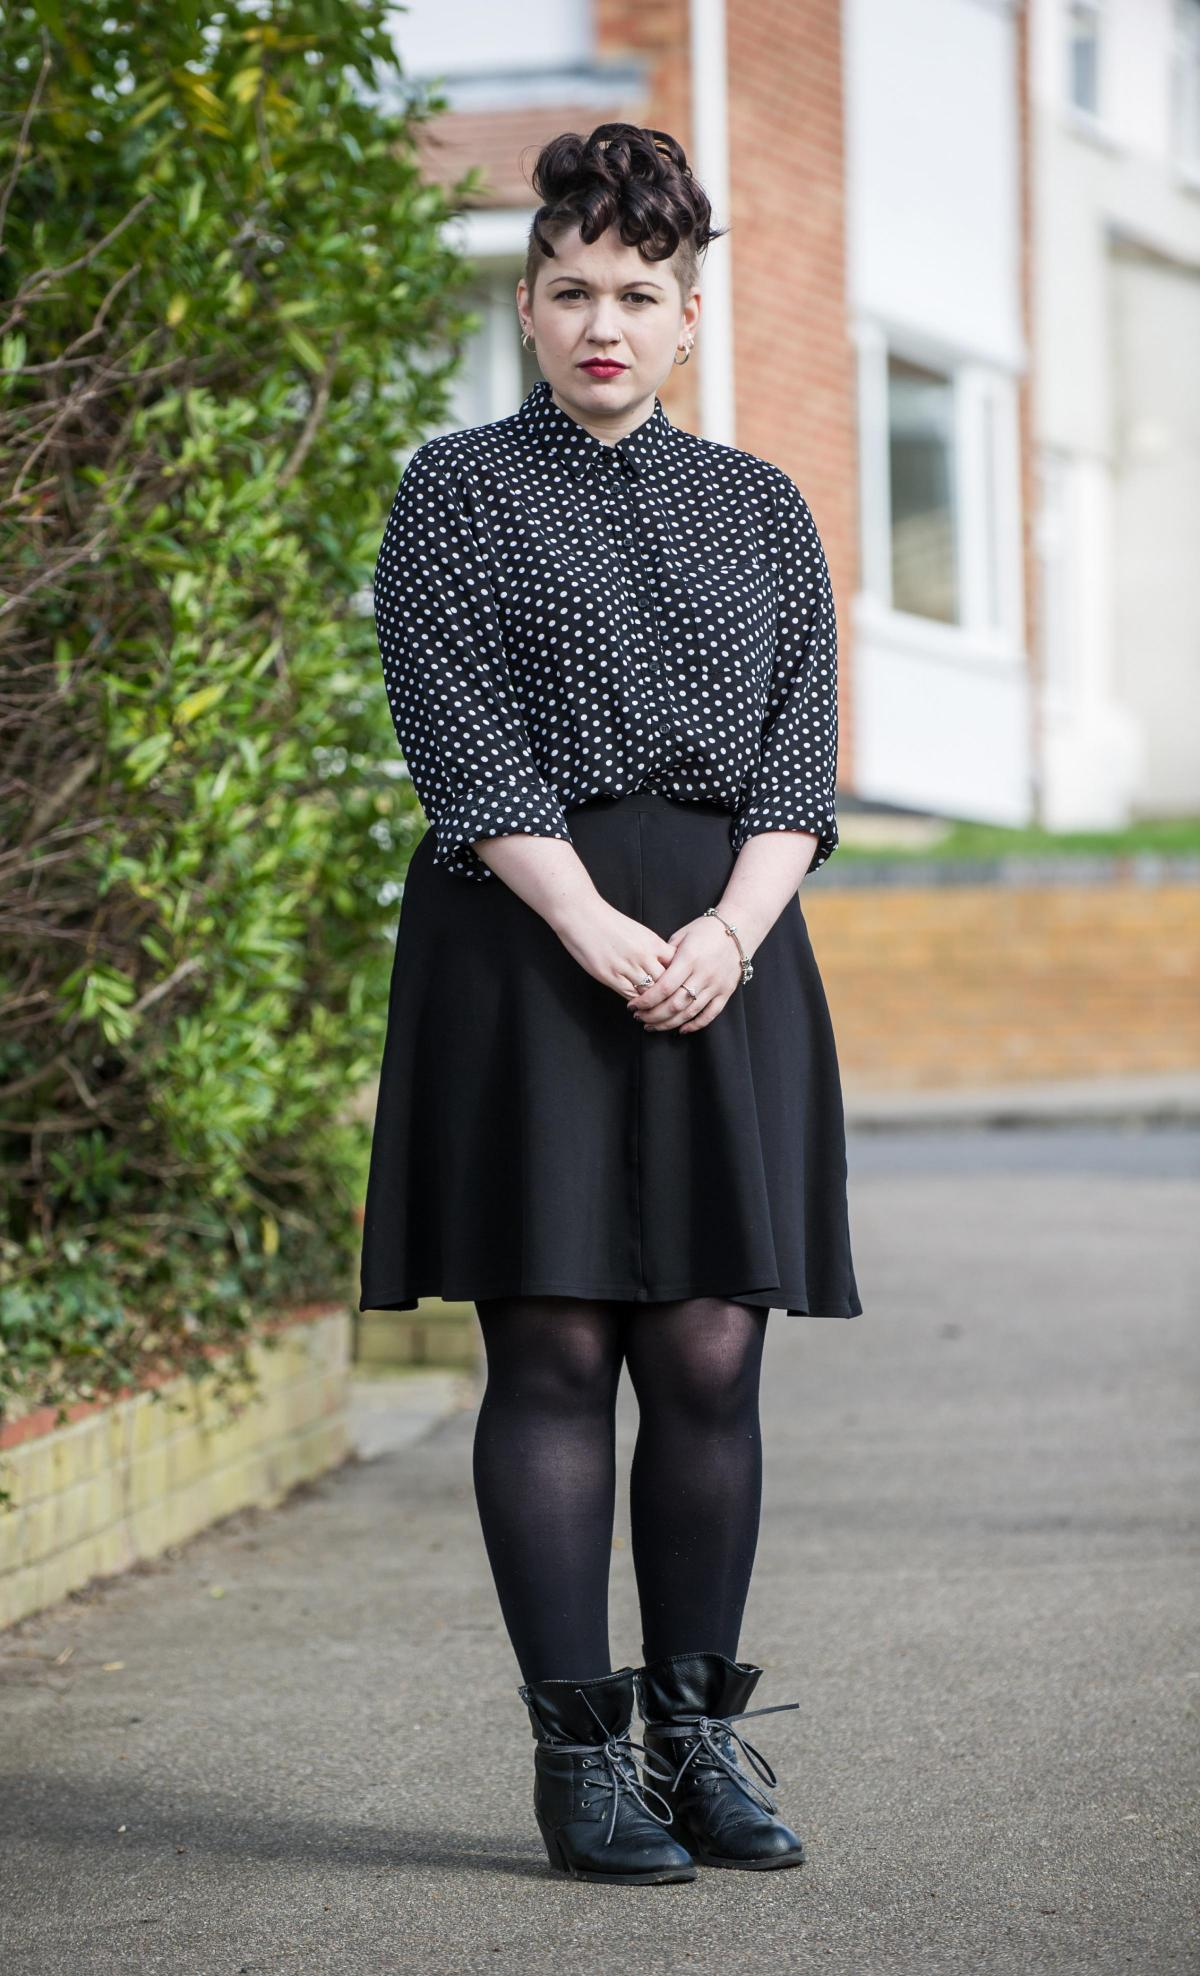 video jobseeker rosie reilly told this outfit was not video jobseeker told this outfit was not conservative enough when she had interview at boots